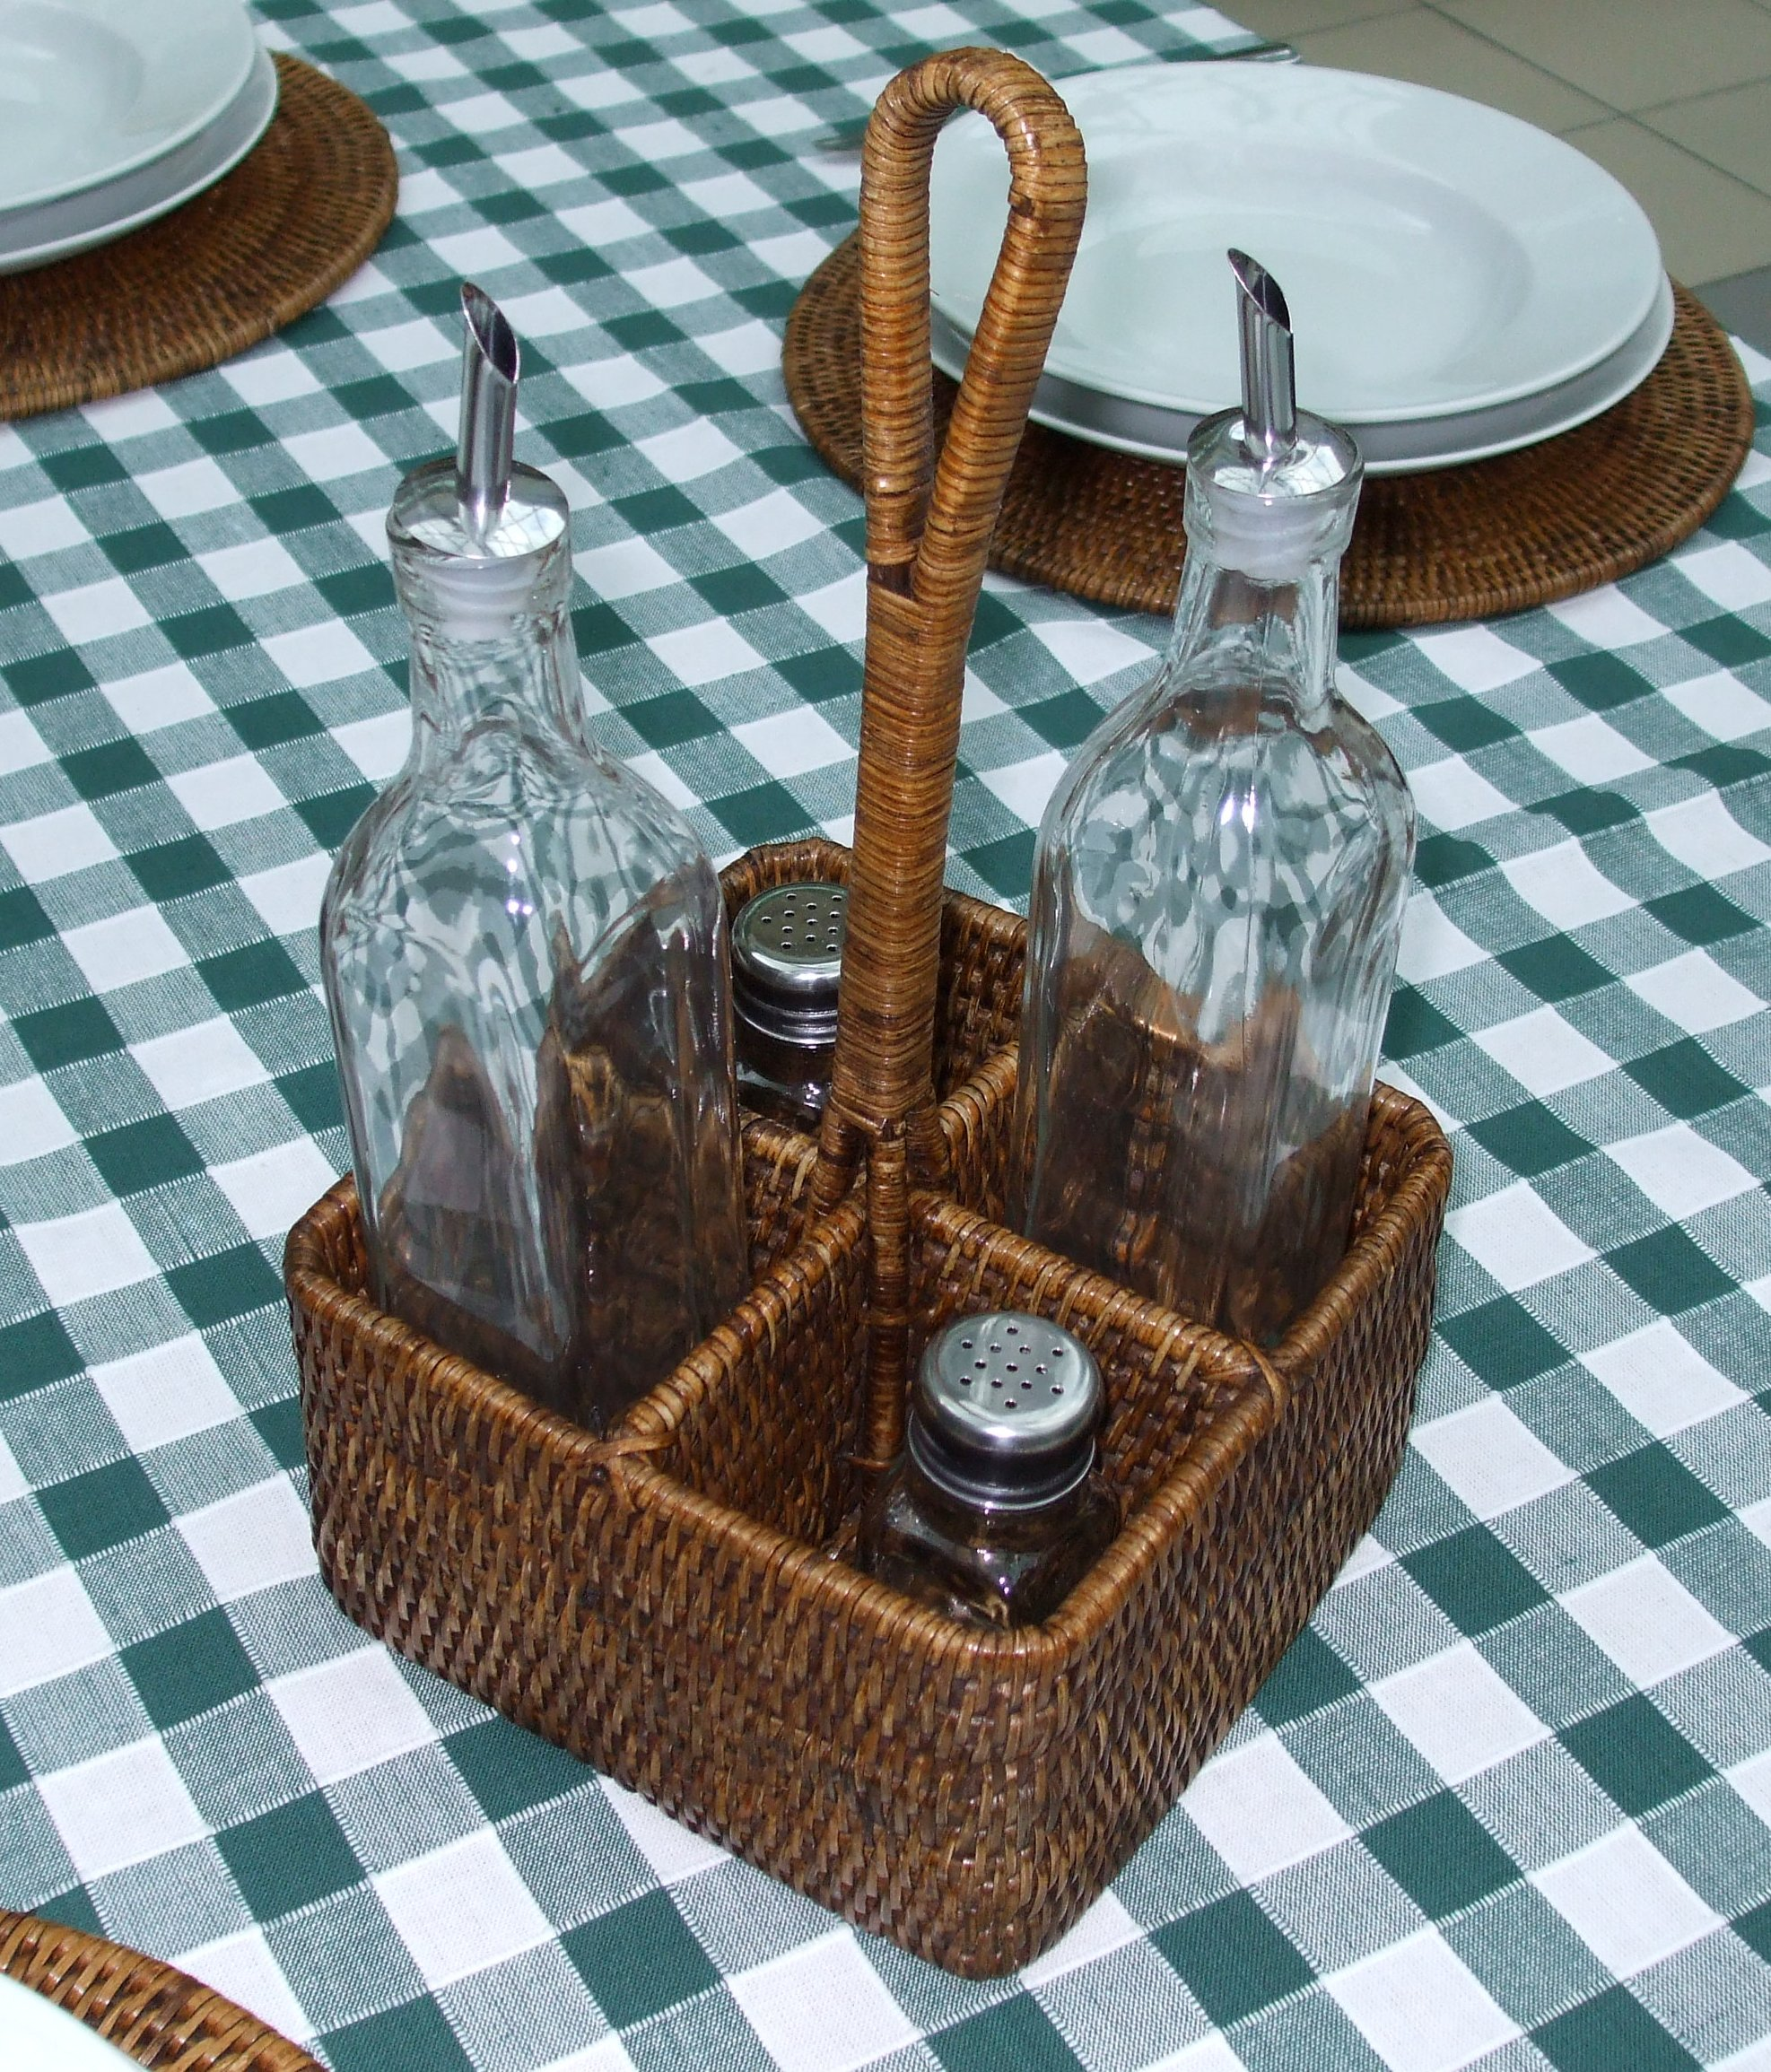 Rattan Condiment Holder The Tablecloth Company - Condiment holder for table